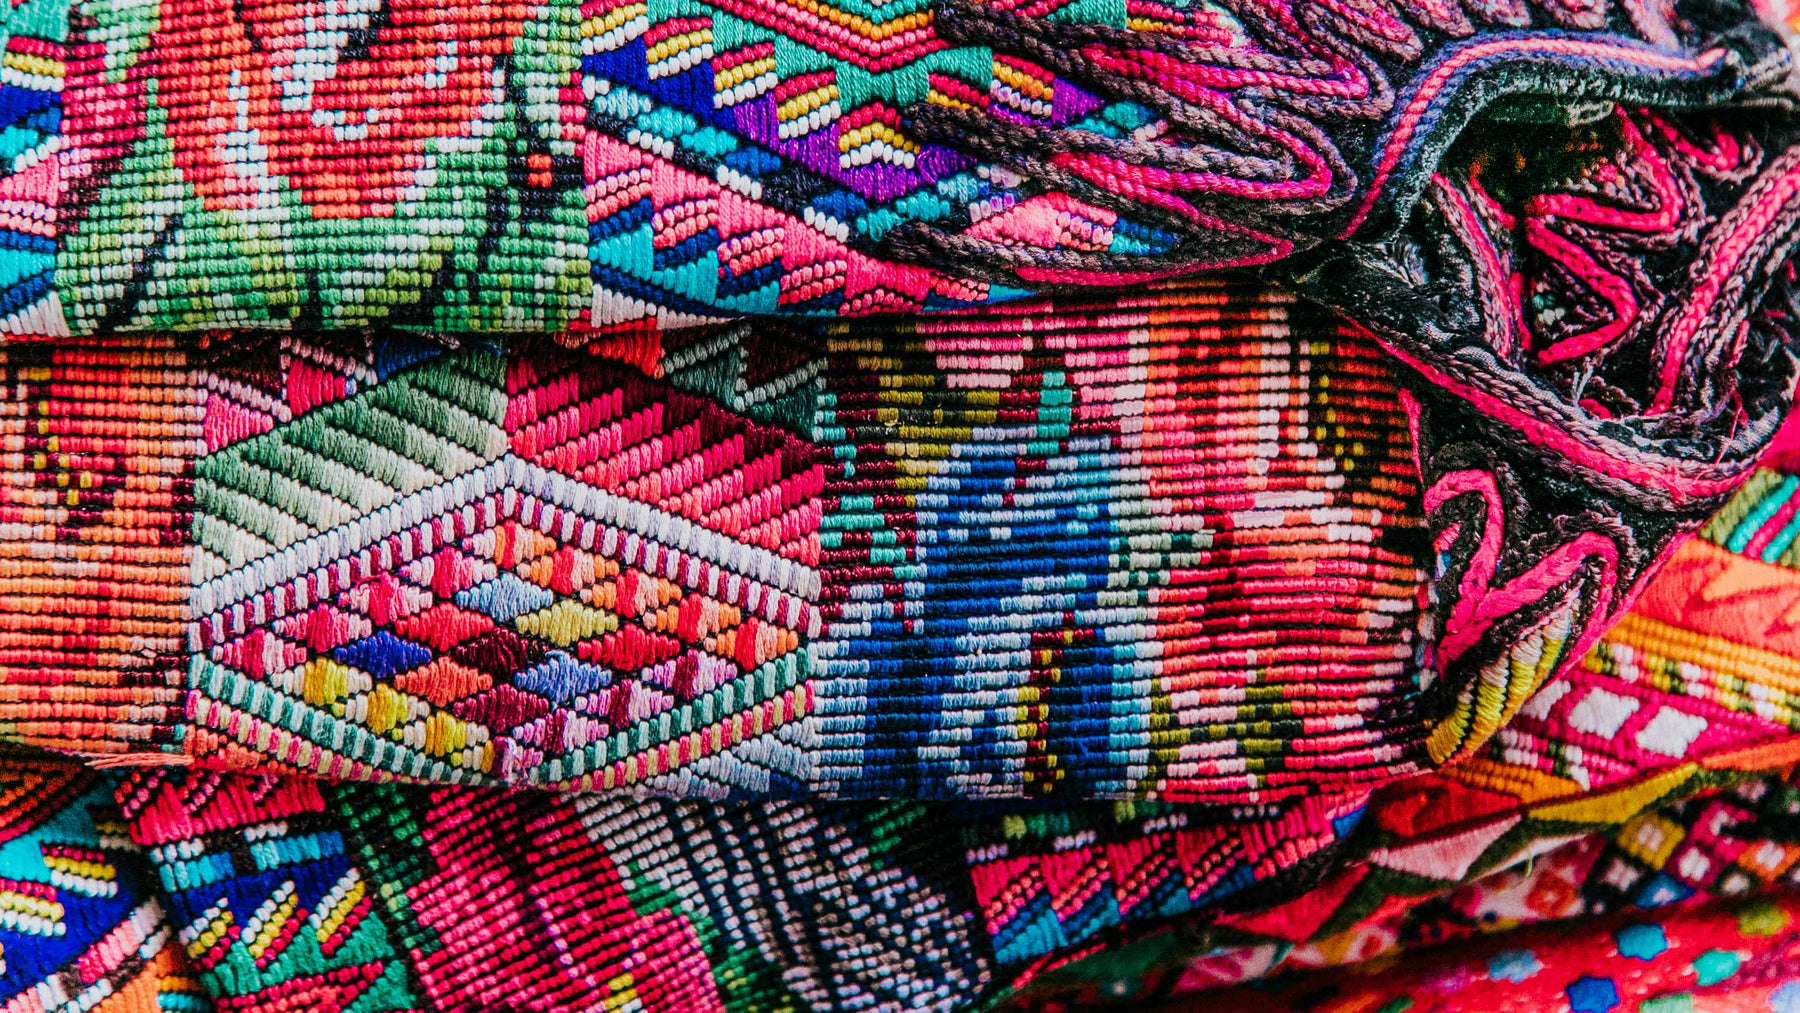 Hiptipico Colorful Textiles made in Guatemala by Artisan Women